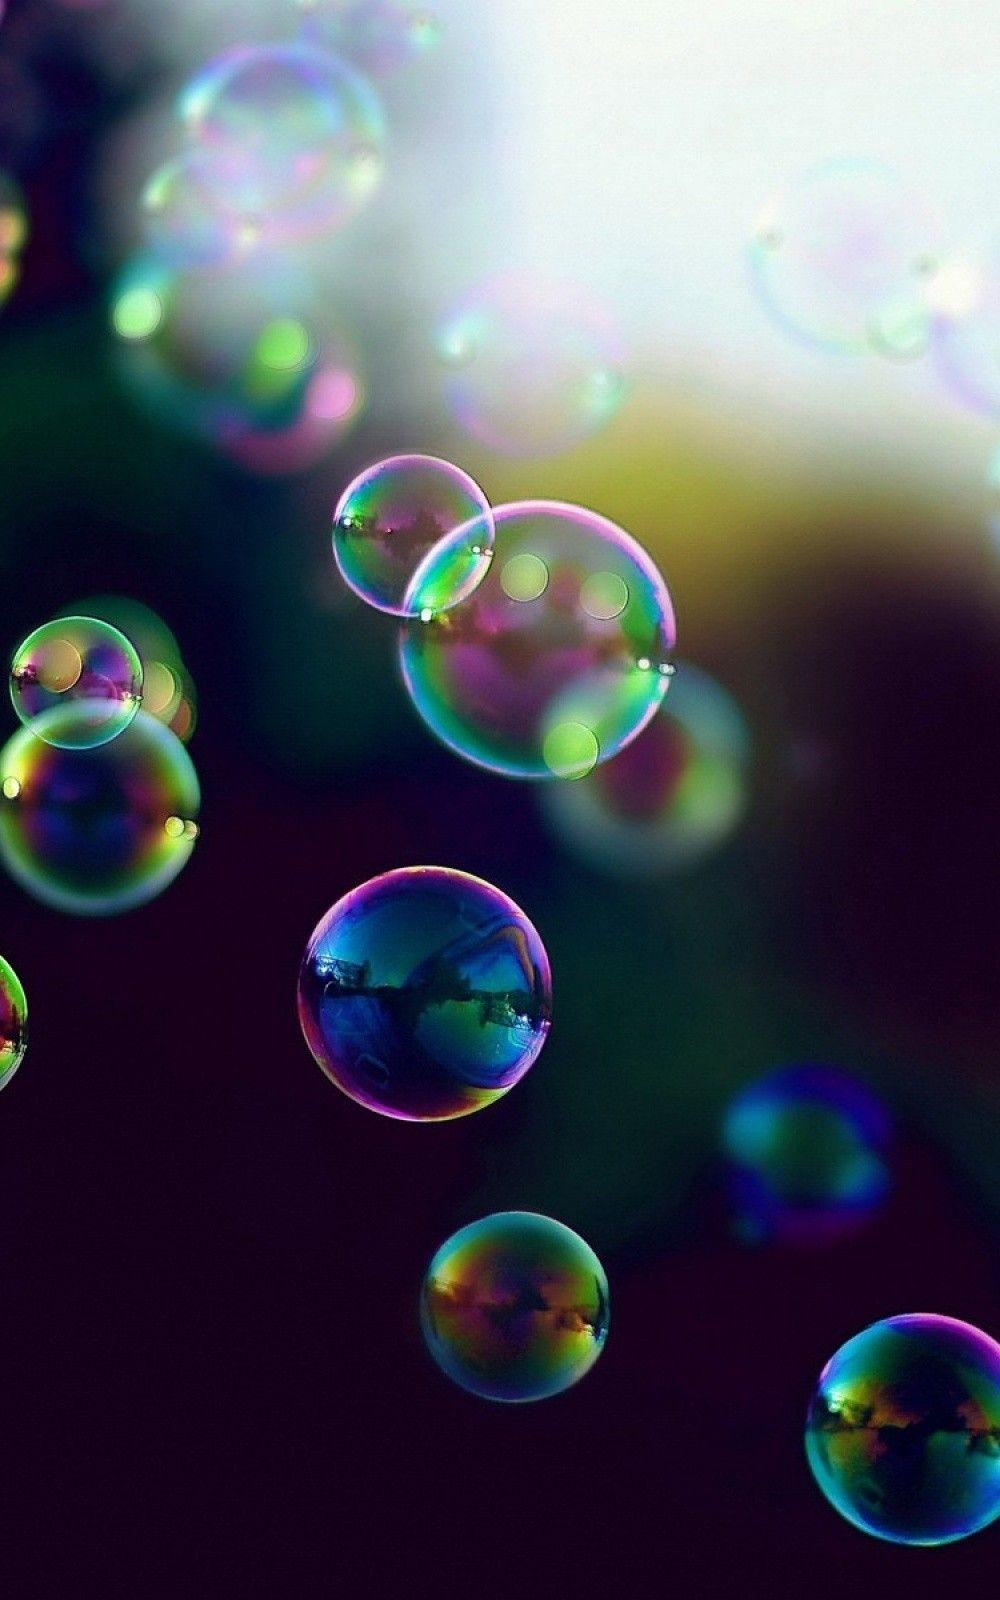 Colorful Iridescent Bubbles Wallpapers Wallpaper Cave